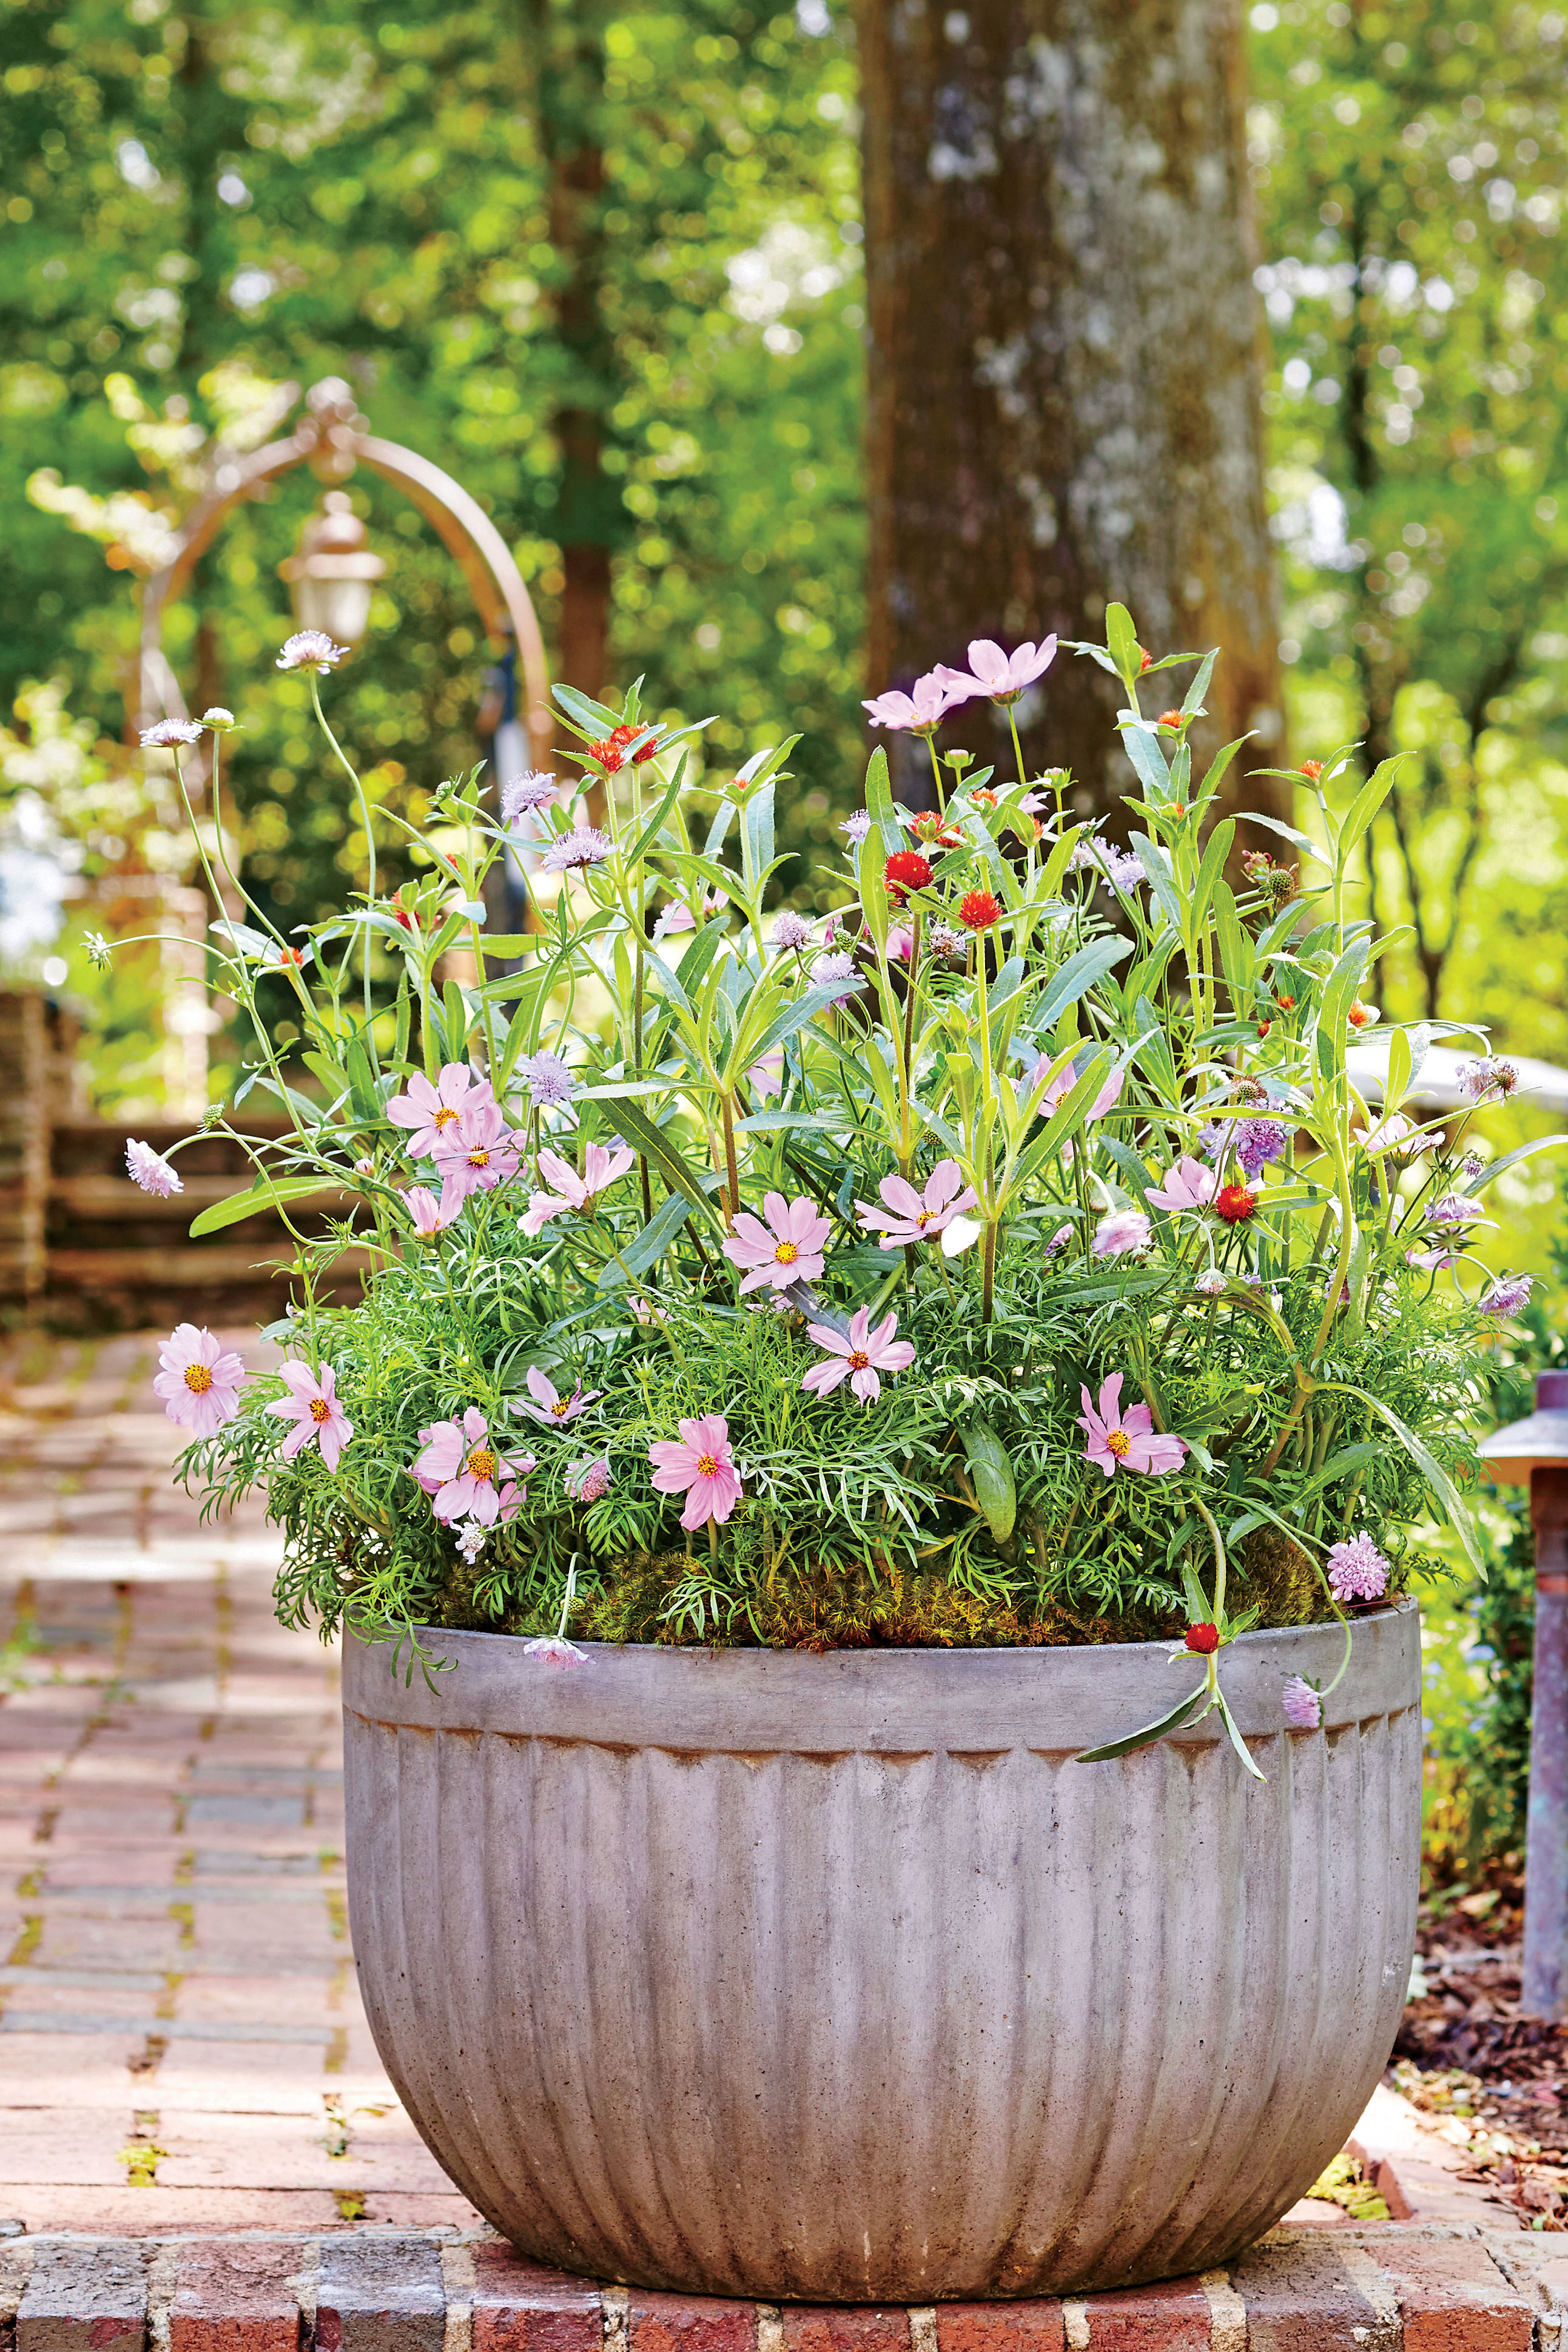 Yes, You Can Grow Cosmos in a Container